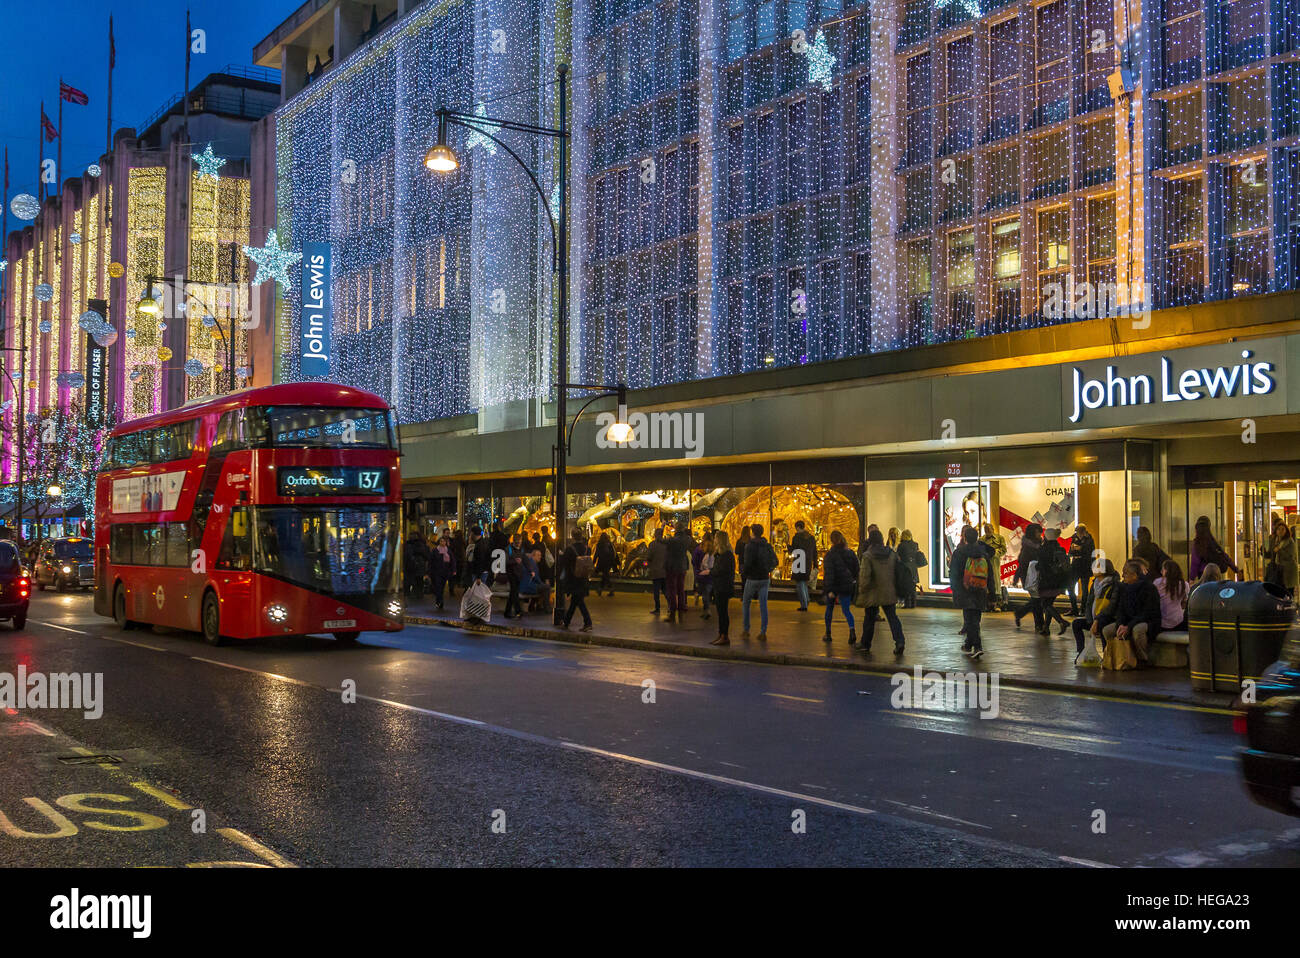 John Lewis Department store on a busy Oxford St bustling with Christmas shoppers at Christmas with The Oxford St - Stock Image